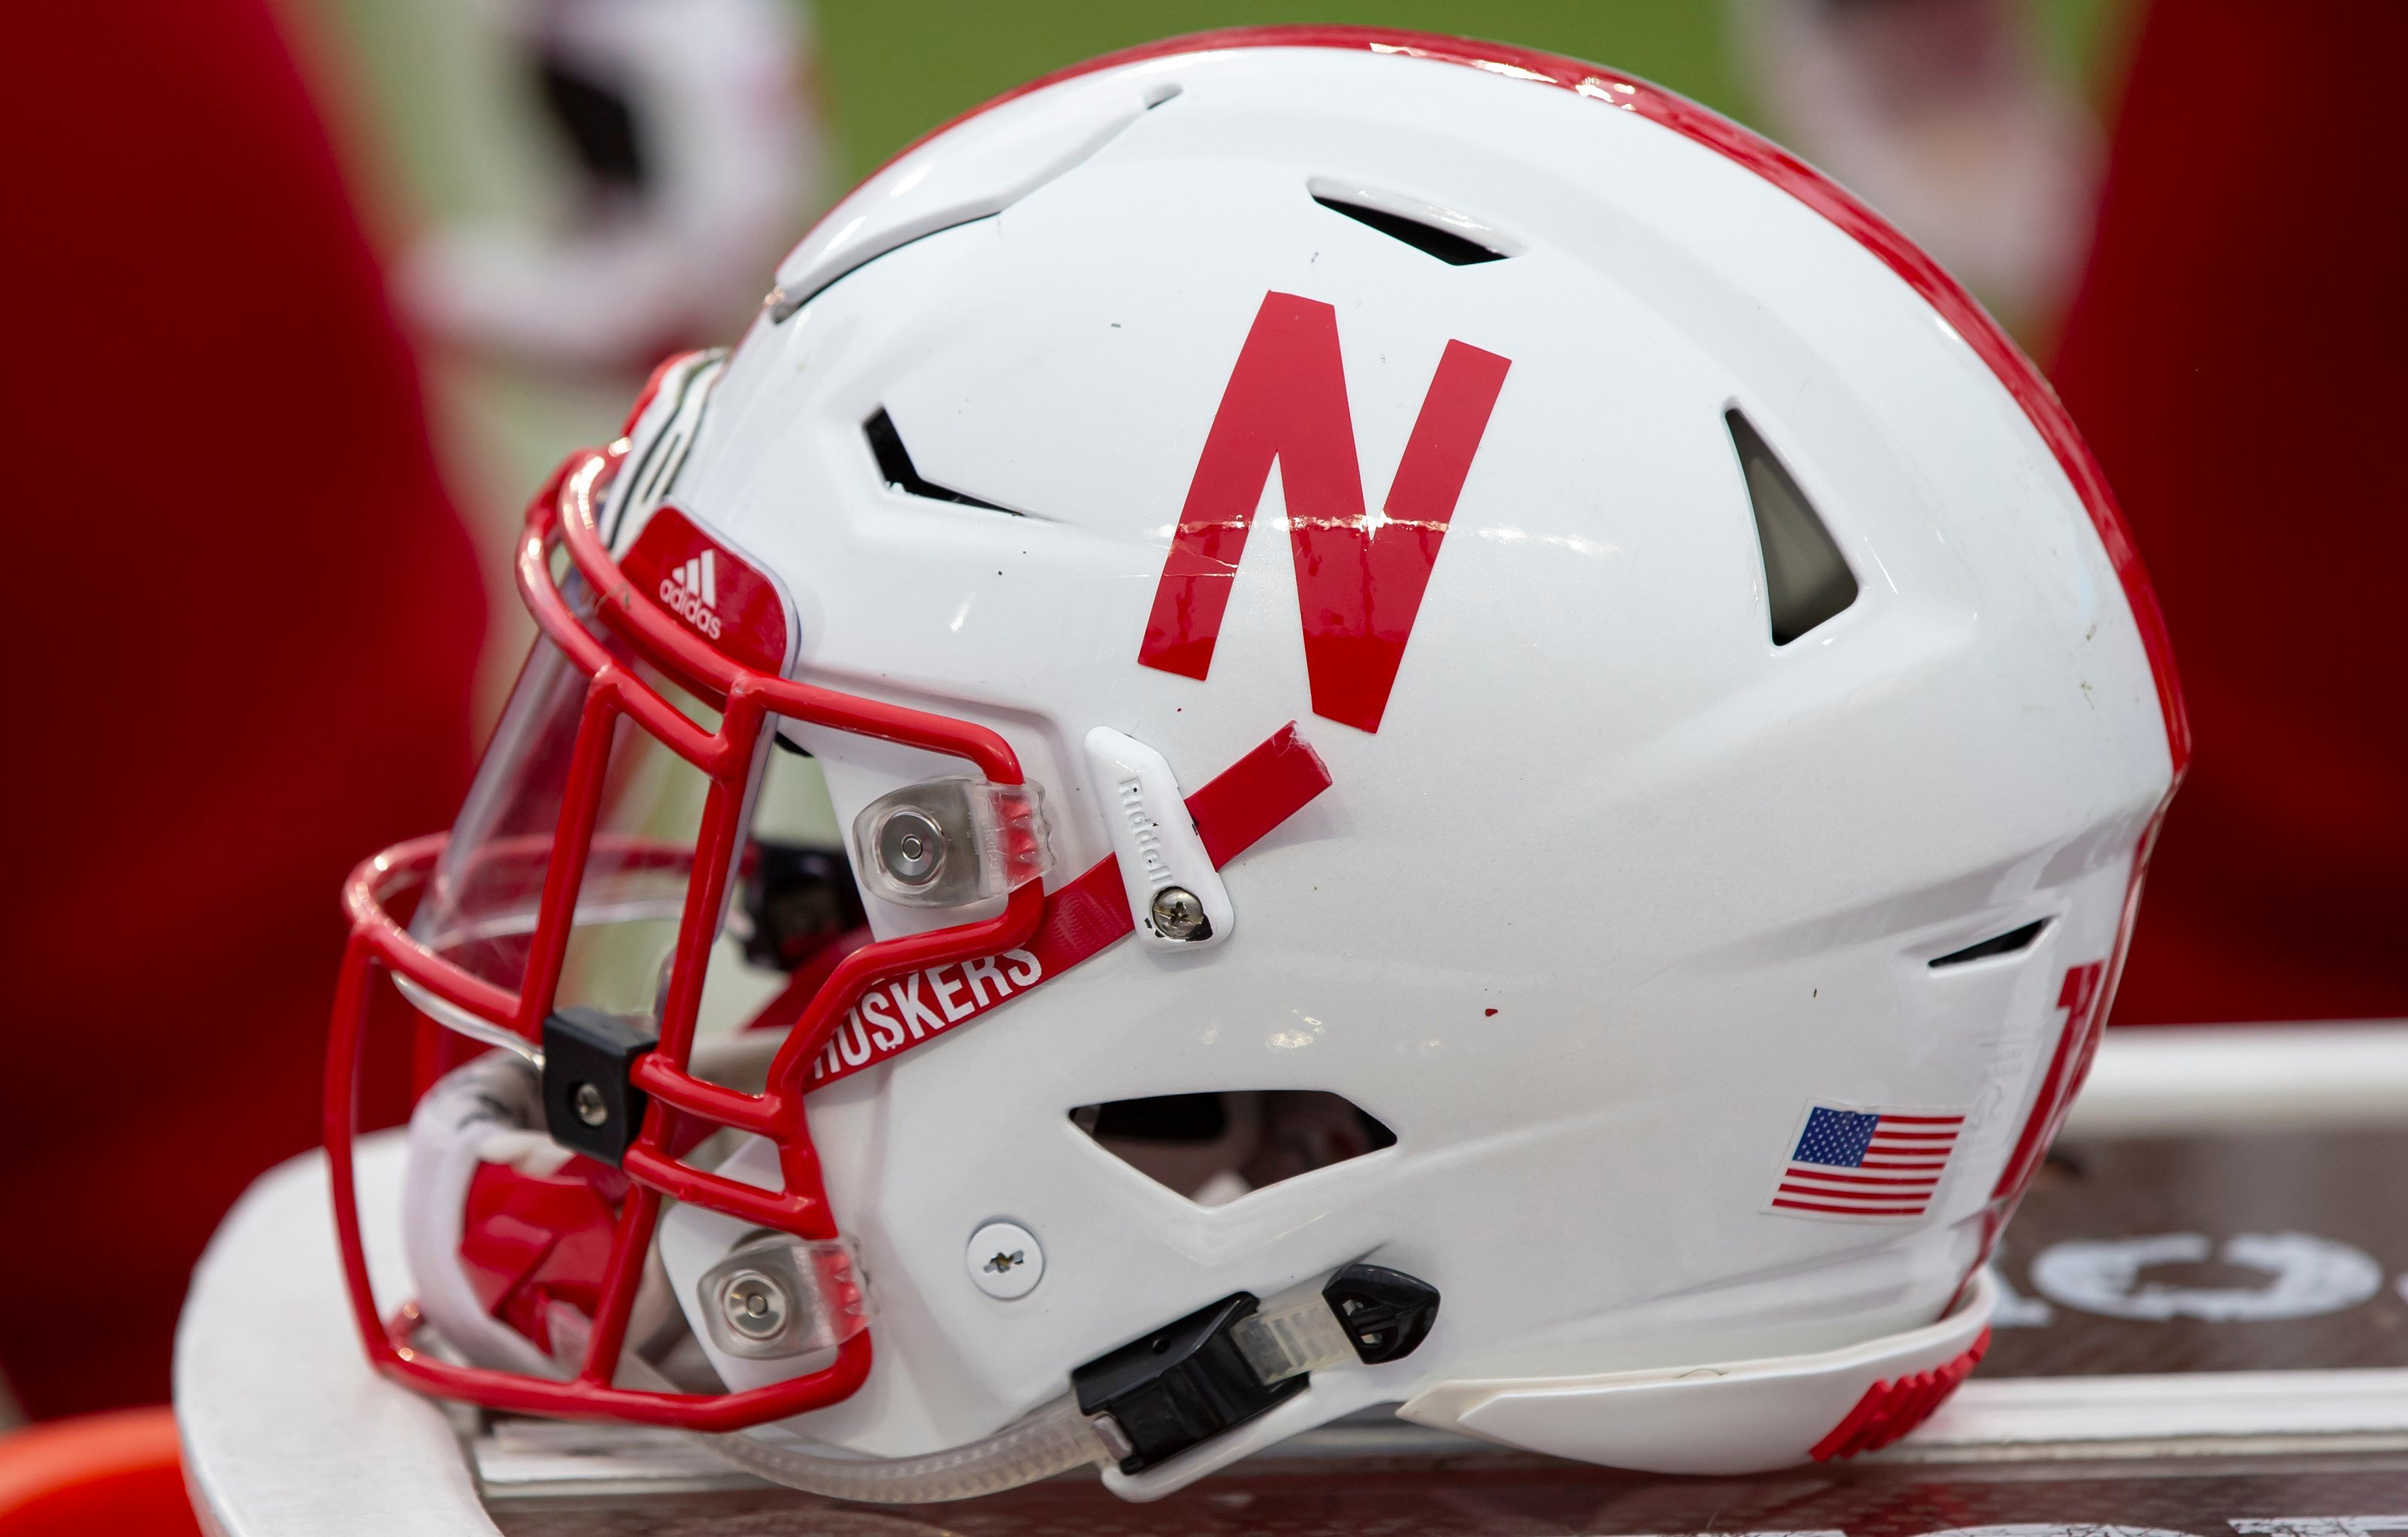 Tickets still available for Huskers spring game Saturday